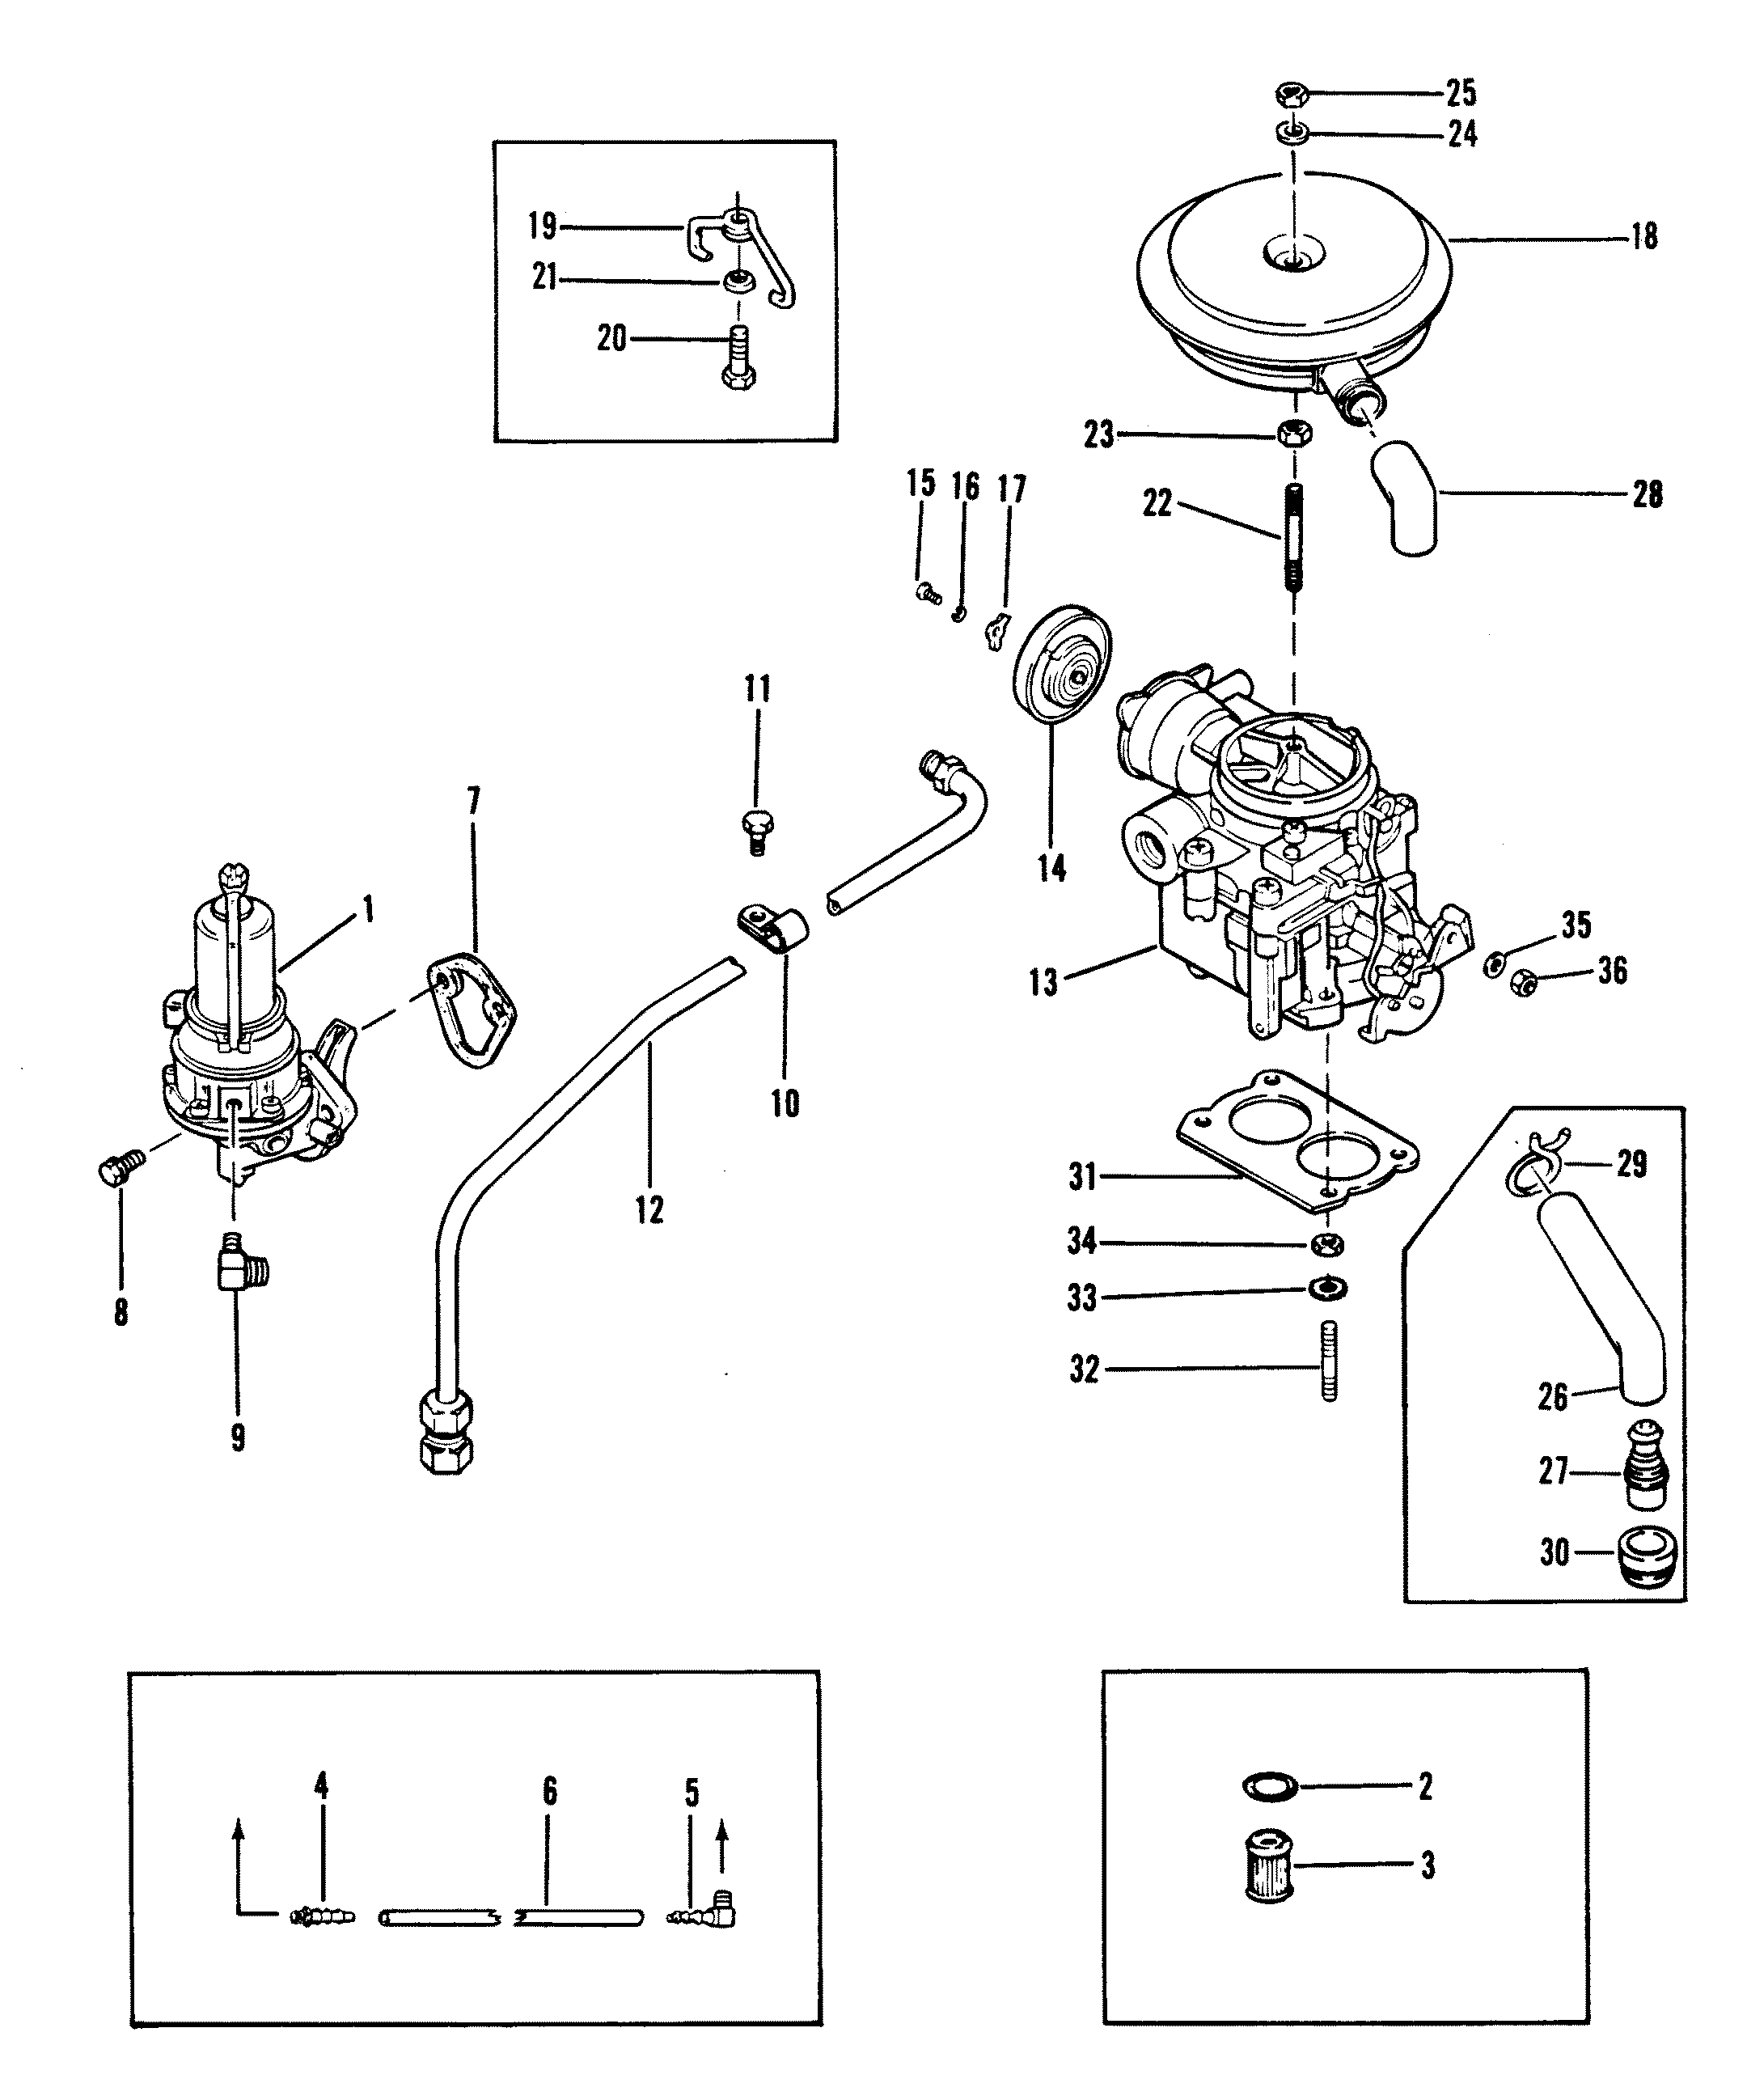 fuel pump and carburetor old design for mercruiser 120 h p 2 5l140Mercruiser Fuel Pump Diagram #18